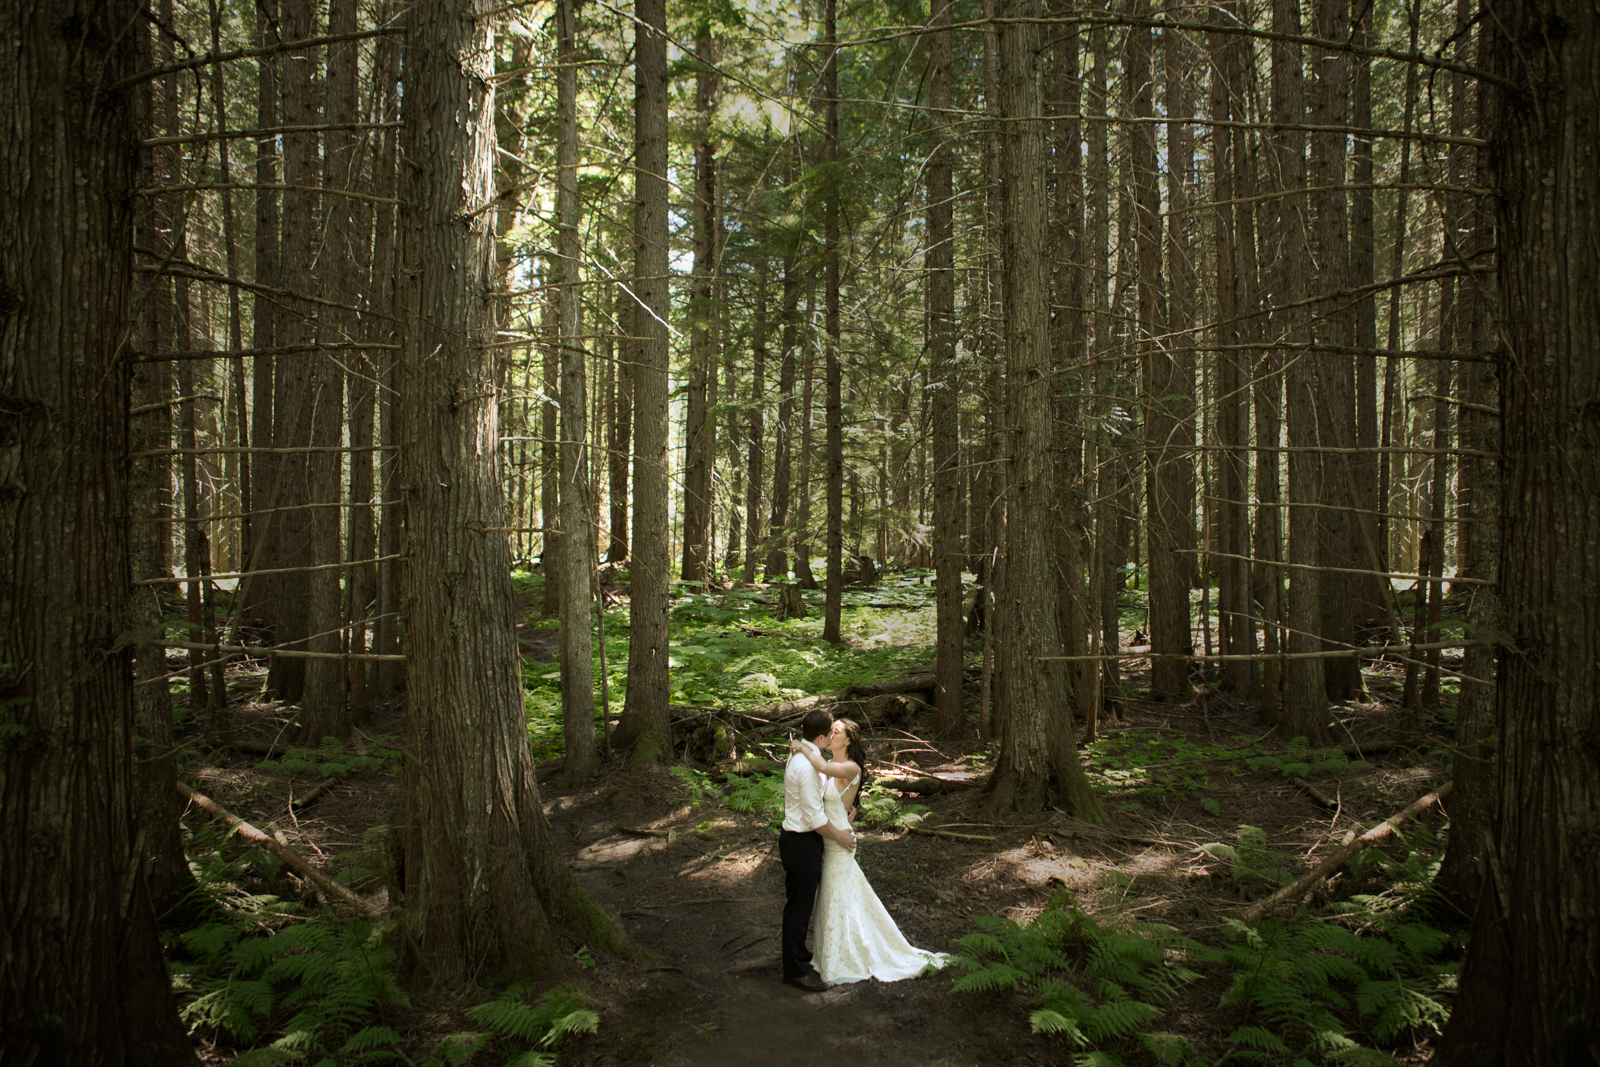 54Andrew_Pavlidis_Photography_Jess_and_Tristan_Revelstoke_Elopement_Calgary_Wedding_Photographer-